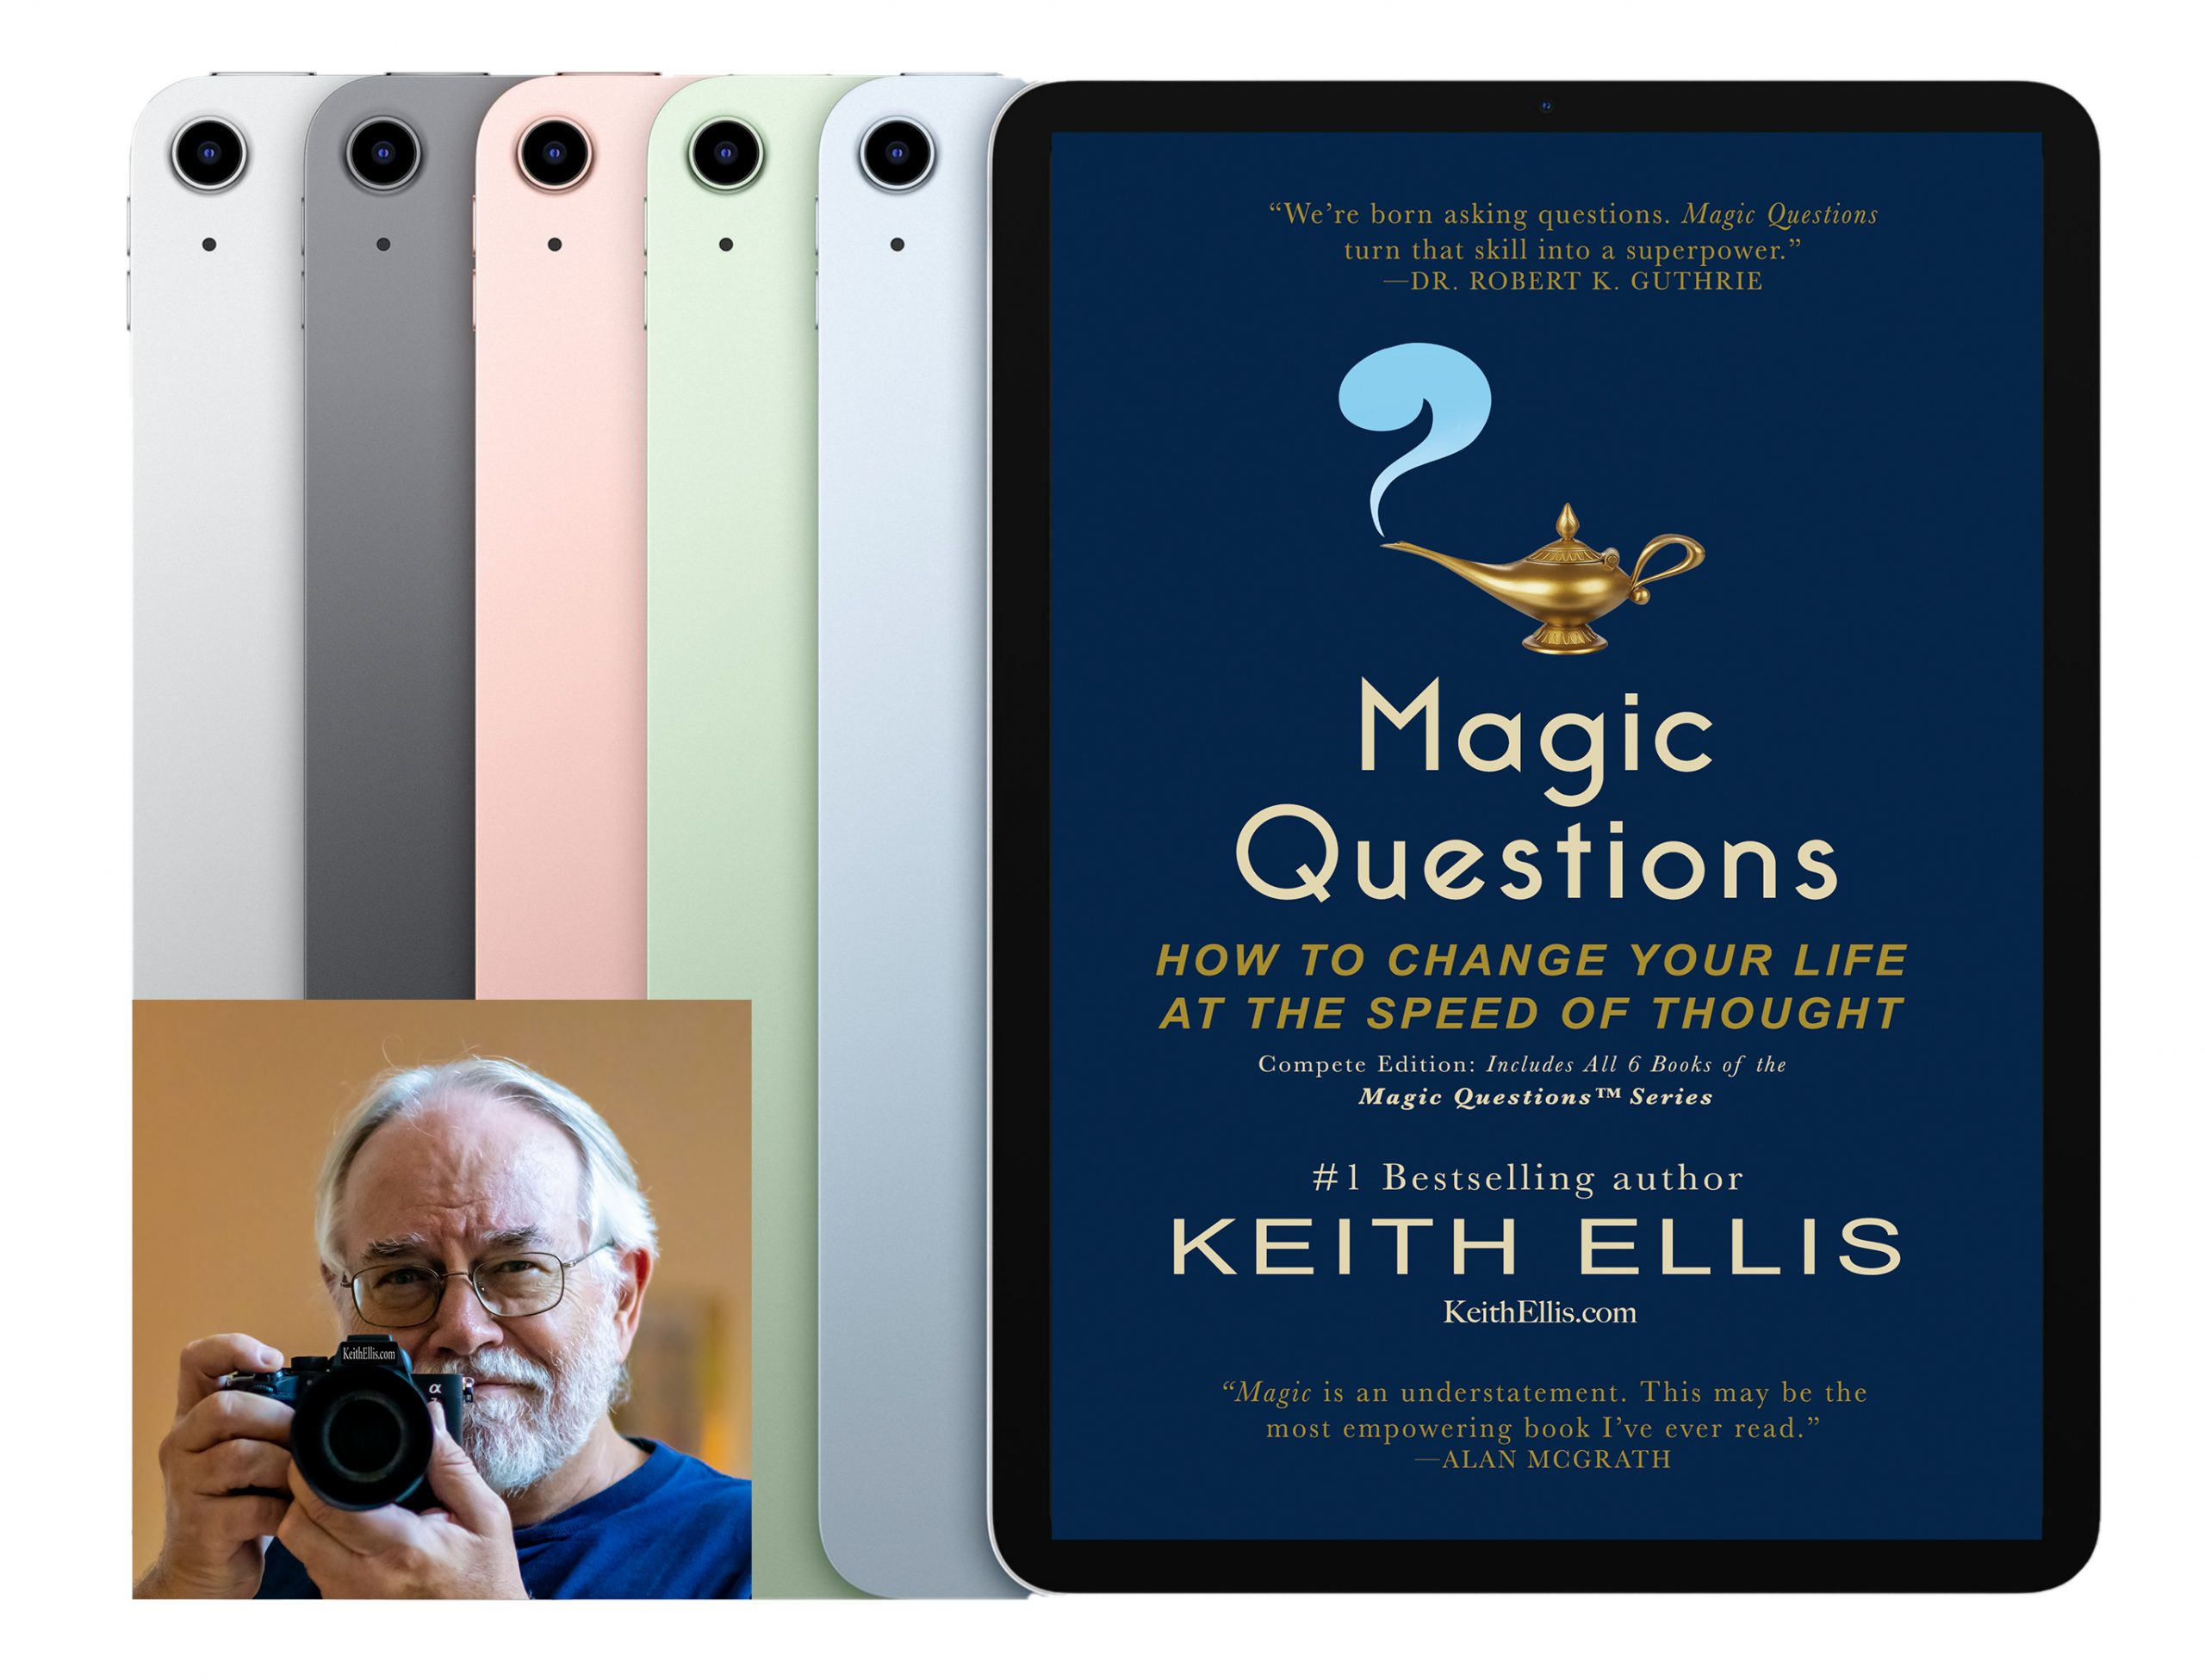 The latest iPad Air preloaded with best-selling books from #1 best-selling author Keith Ellis Giveaway